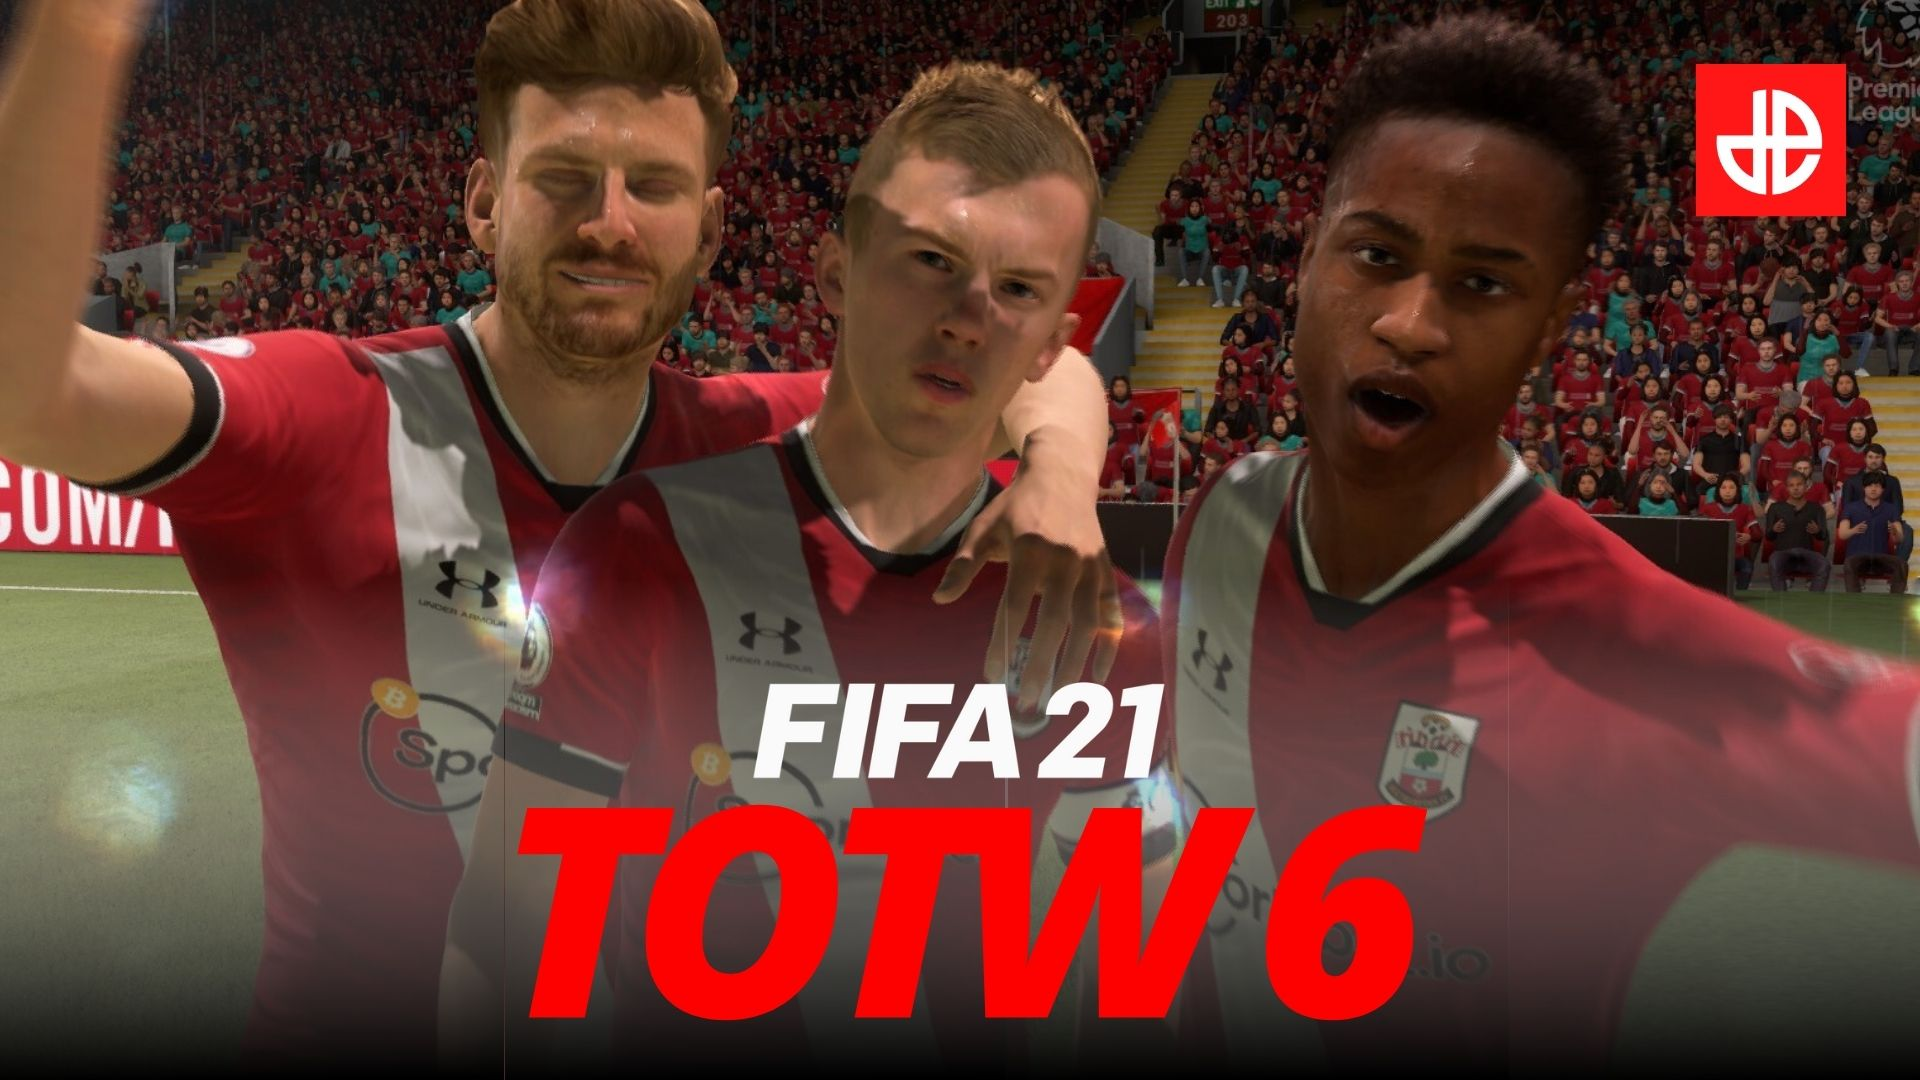 James Ward-Prowse celebrates Southampton goal in FIFA 21.